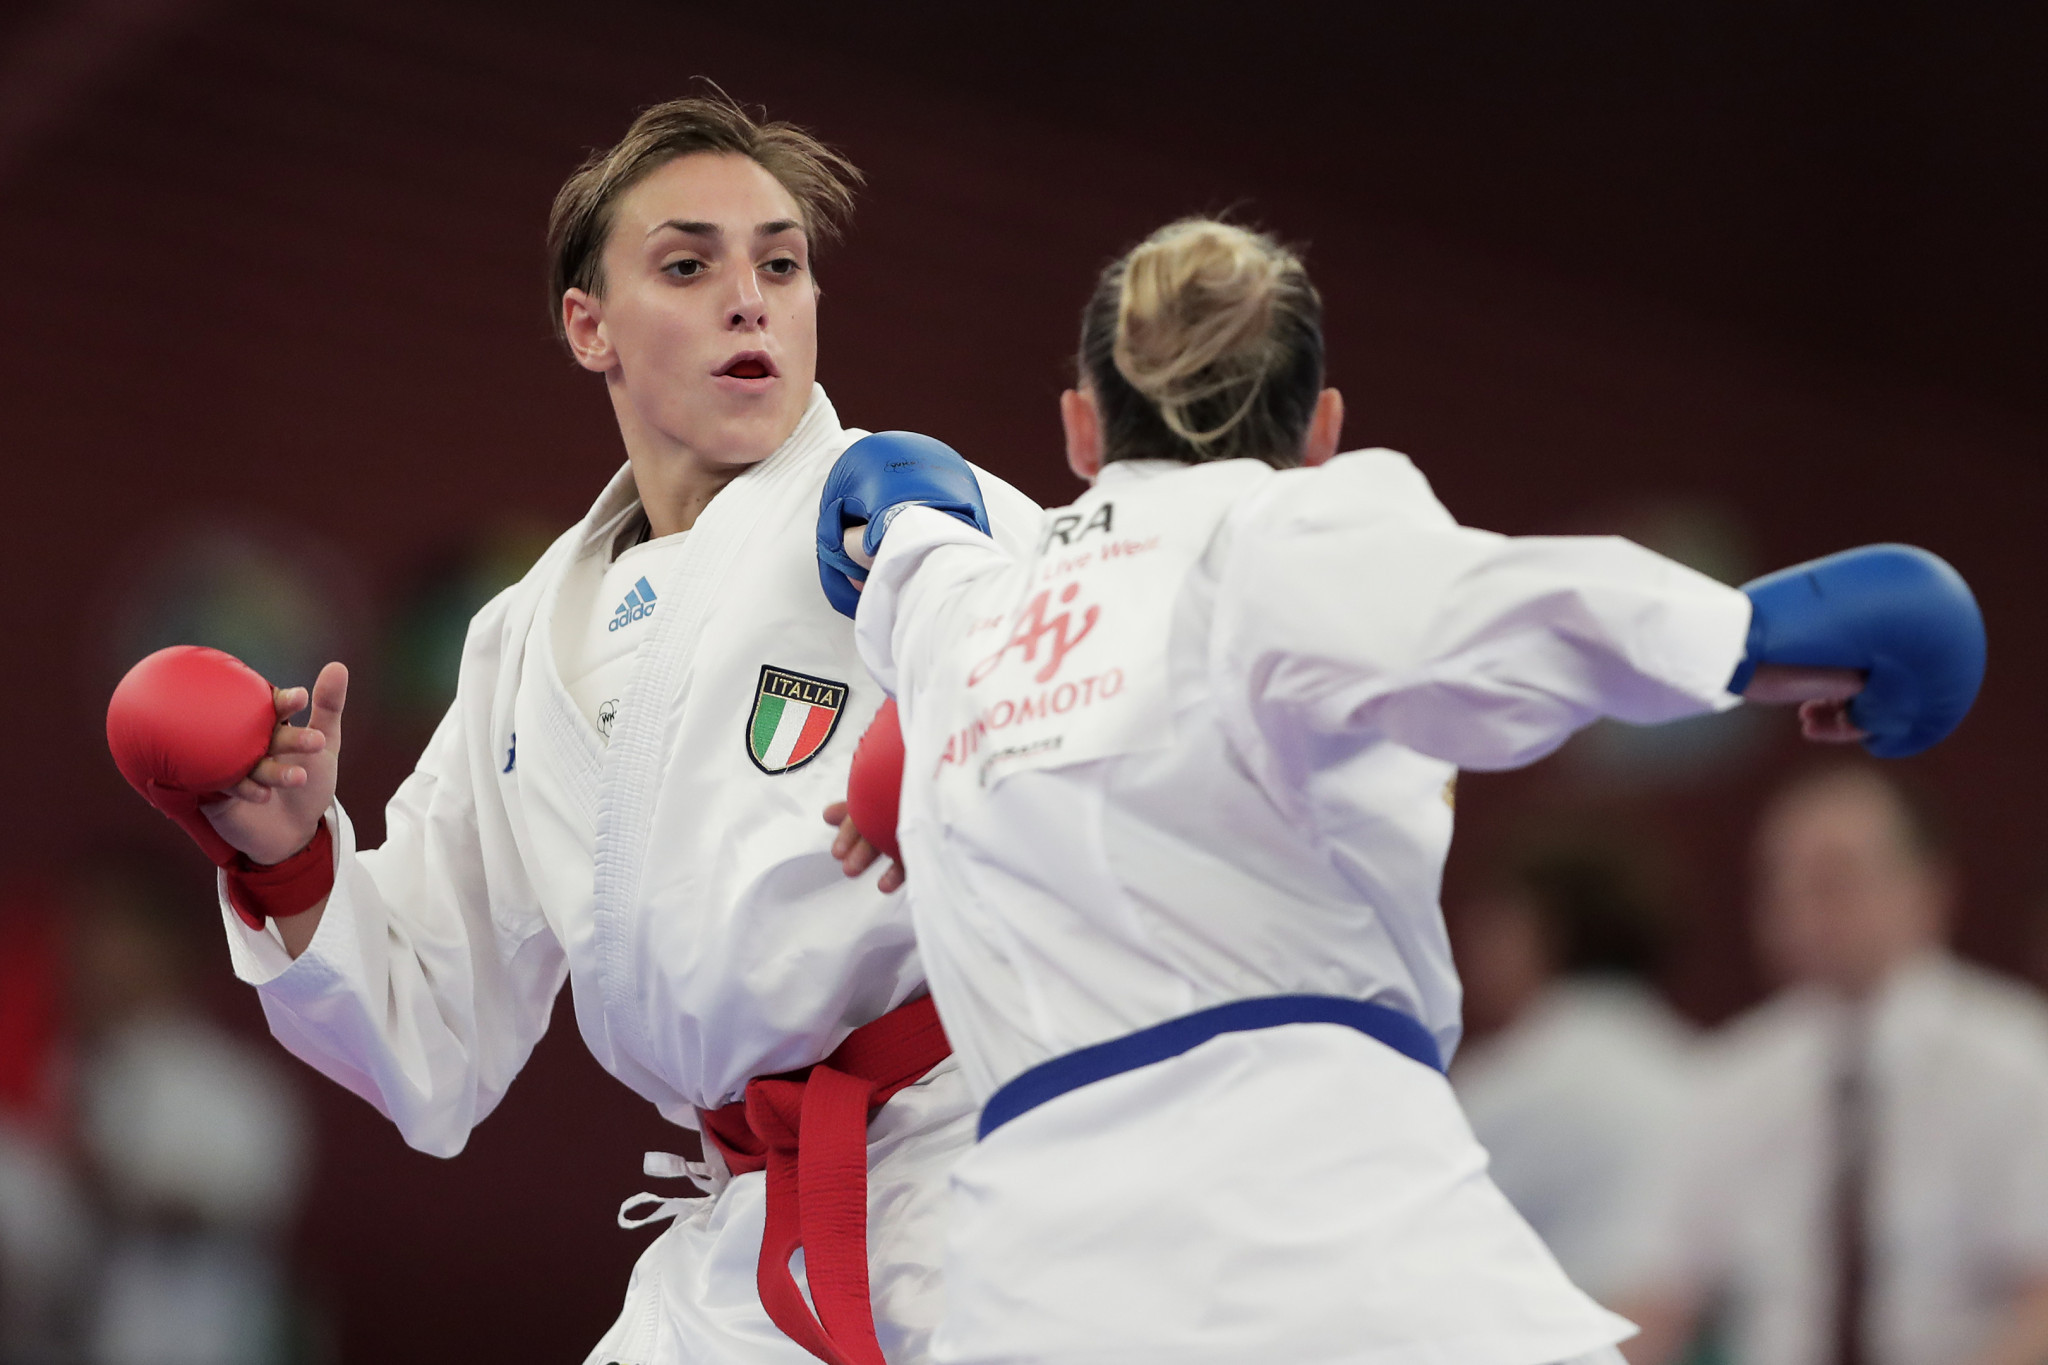 Gaysinsky among last six karateka to qualify for Tokyo 2020 after Canada protest